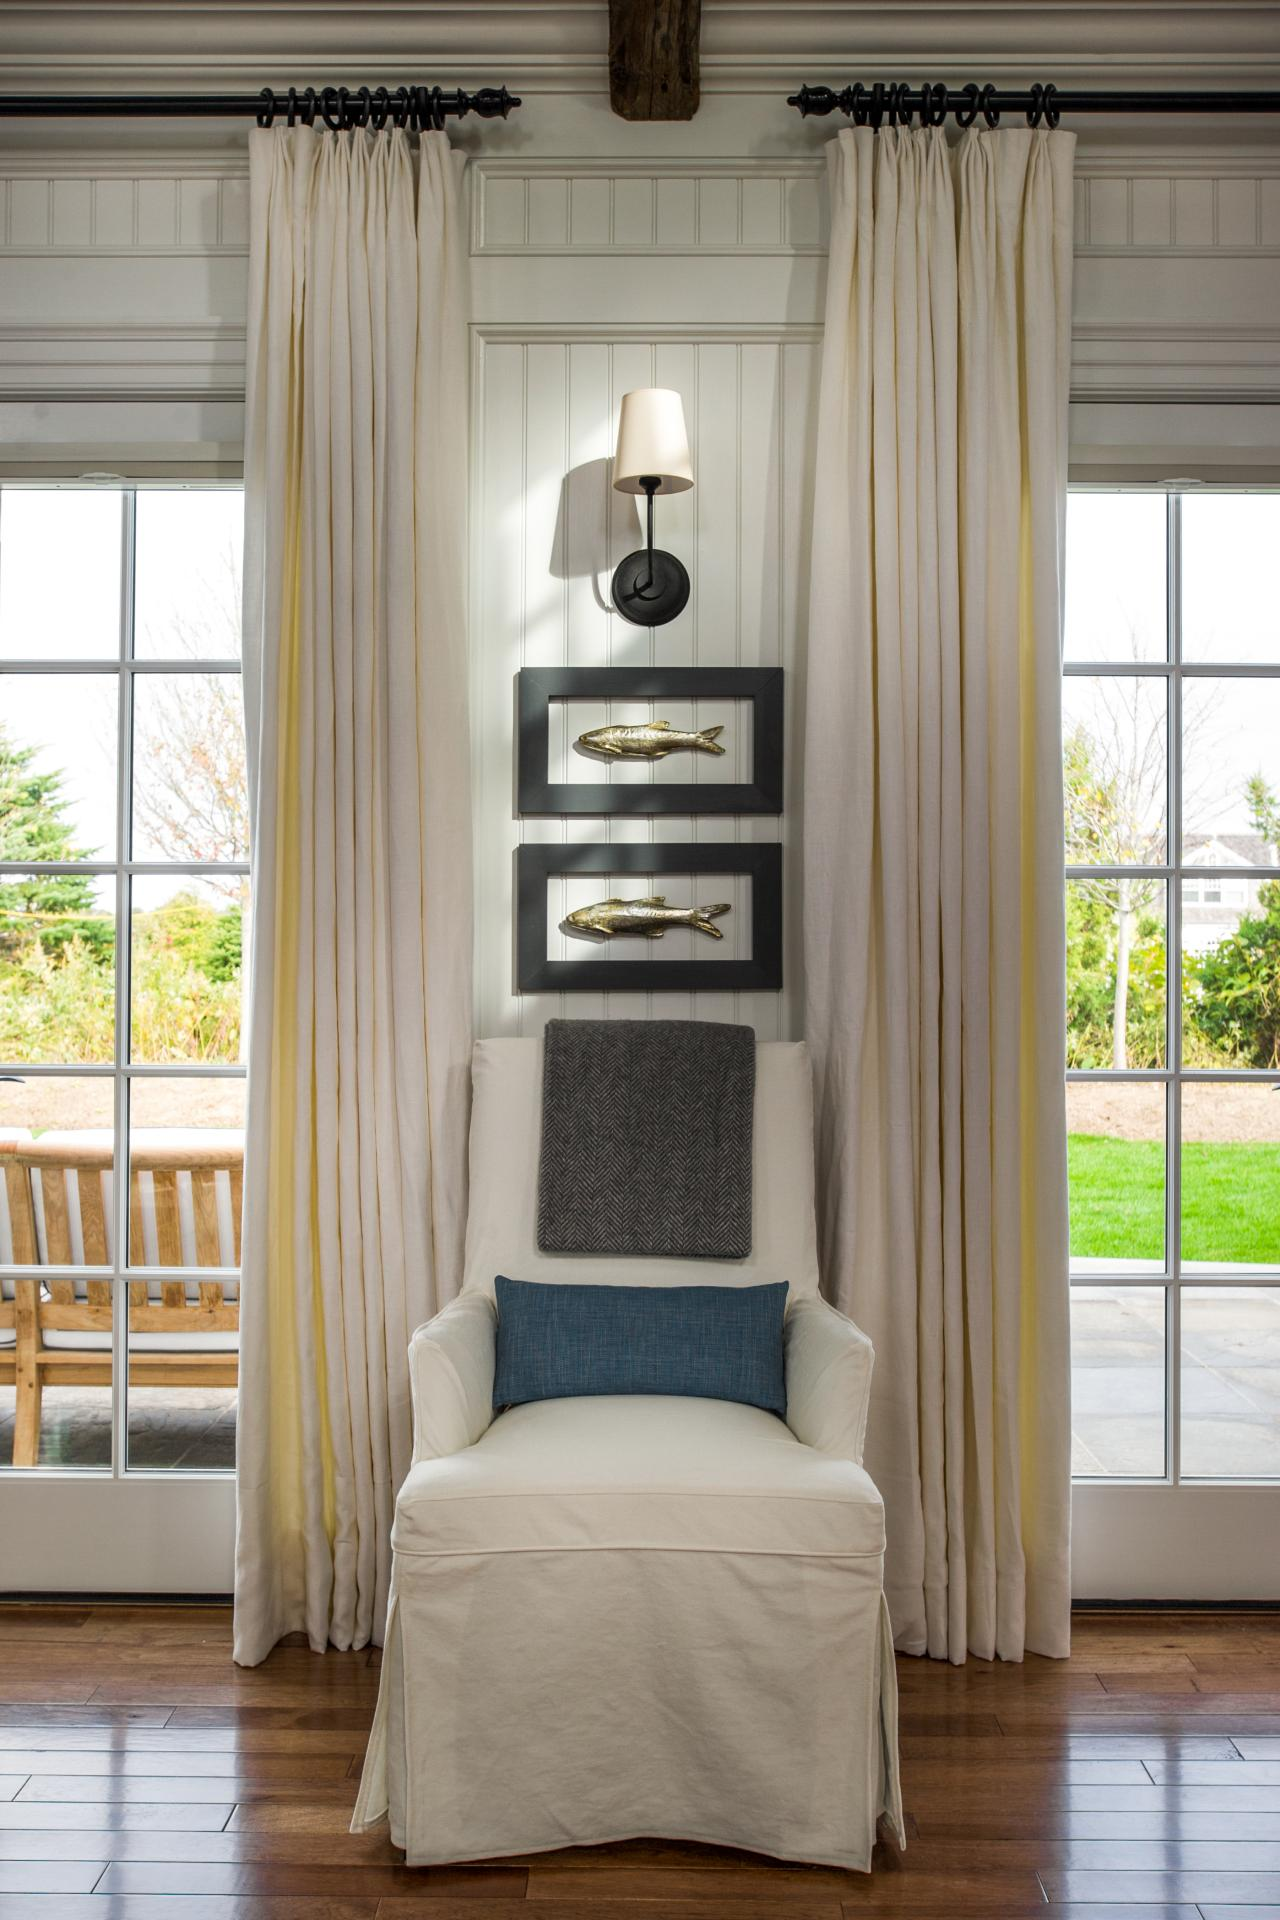 dh2015_great-room_white-side-chair-blue-pillow_v.jpg.rend.hgtvcom.1280.1920